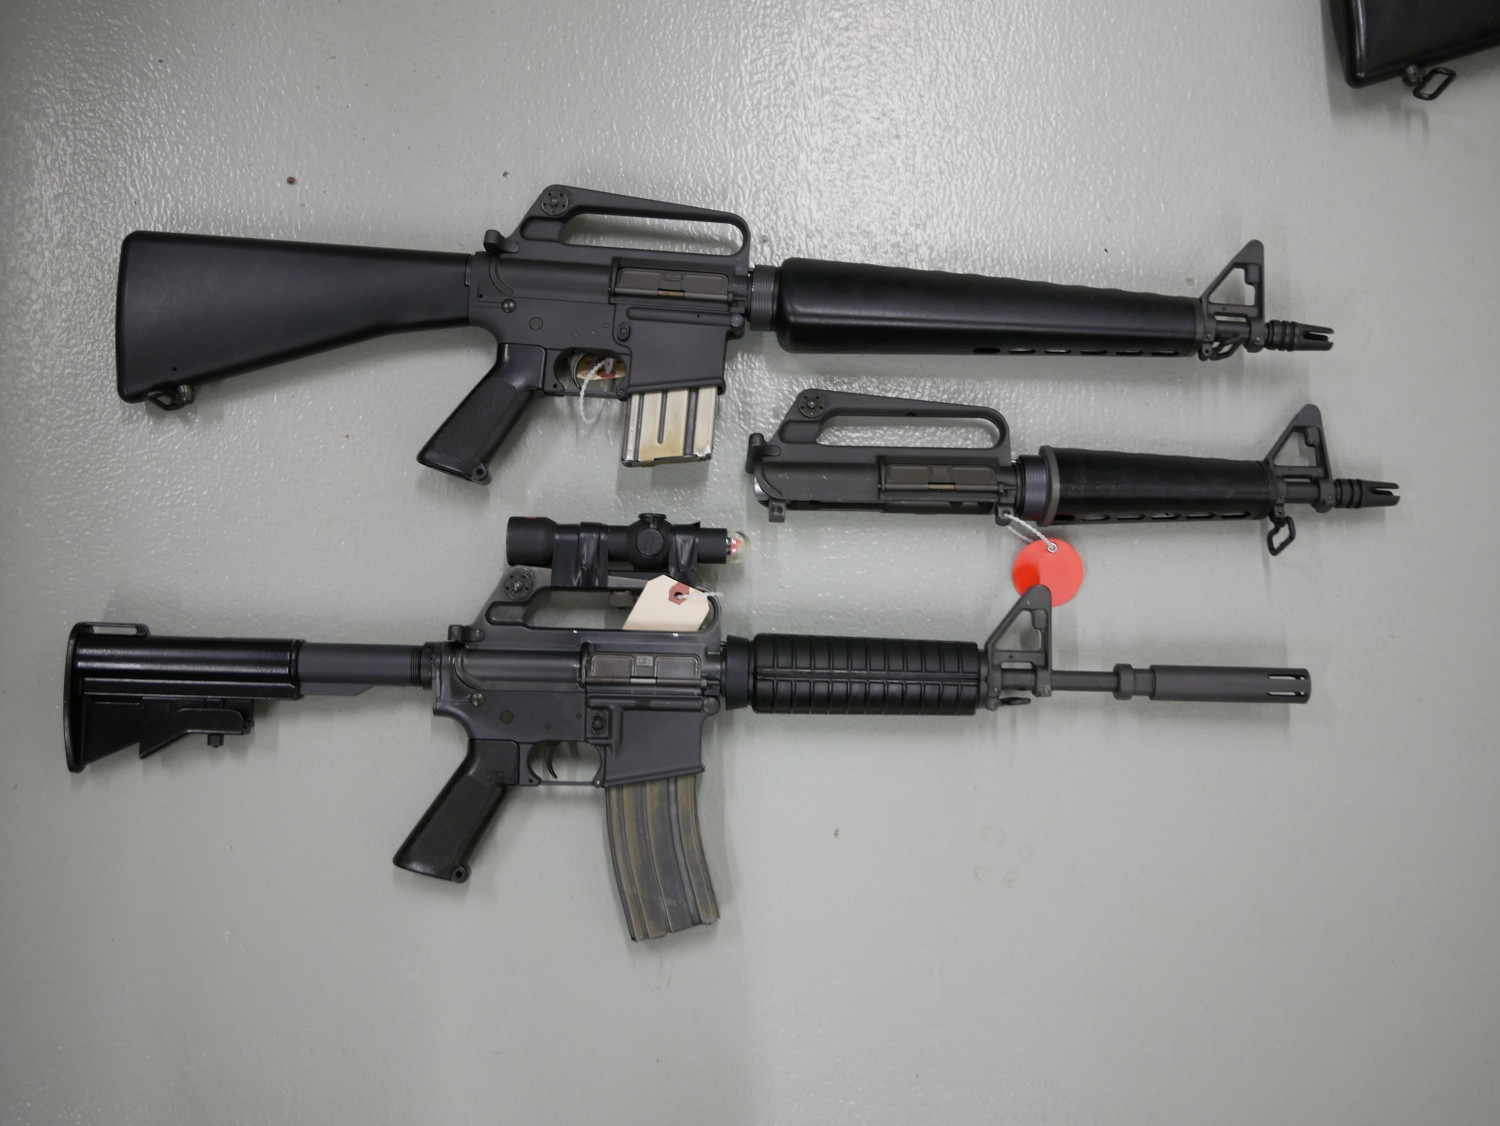 The Retro AR Collection of Enhanced Tactical Arms | Patriots With Guns